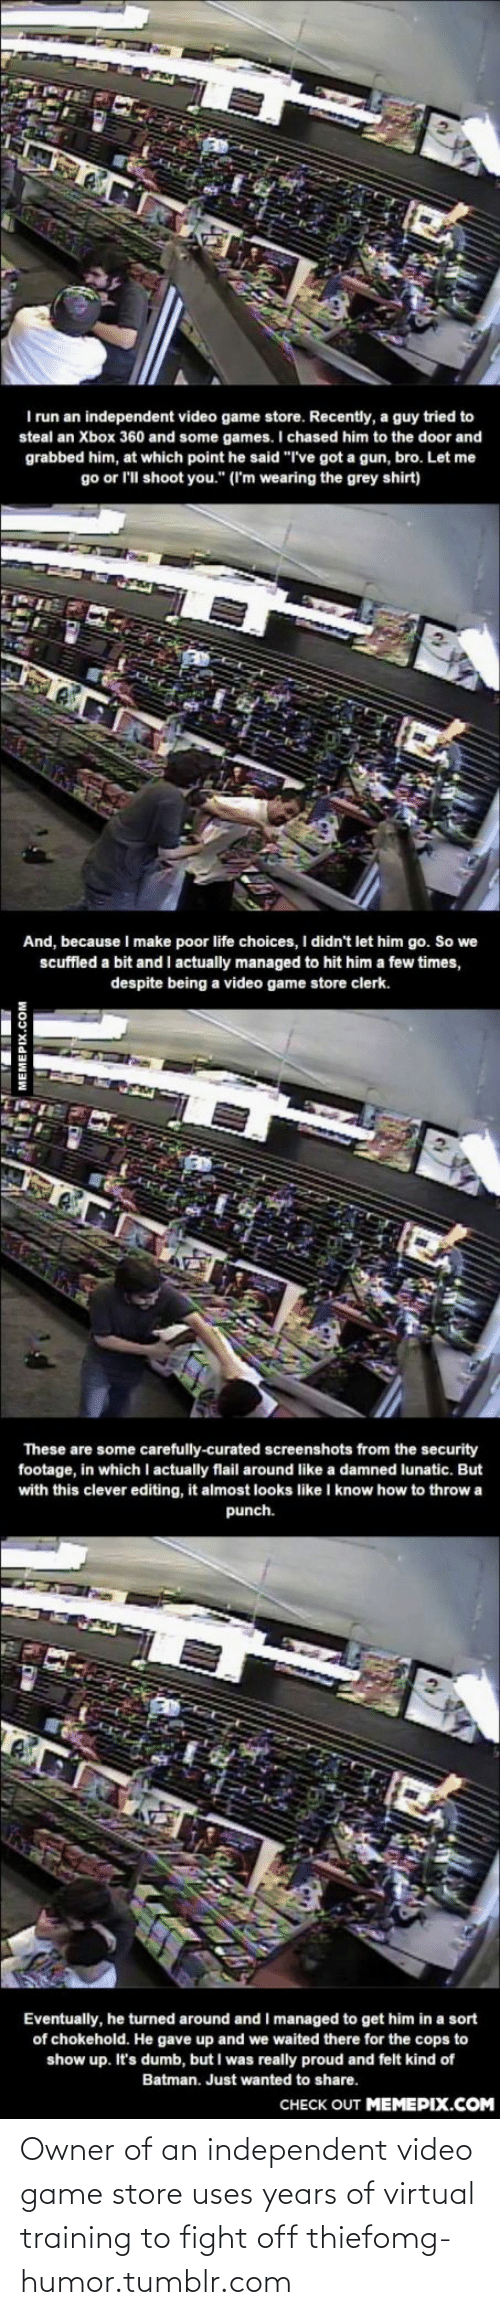 """Curated: I run an independent video game store. Recently, a guy tried to  steal an Xbox 360 and some games. I chased him to the door and  grabbed him, at which point he said """"I've got a gun, bro. Let me  go or l'll shoot you."""" (I'm wearing the grey shirt)  And, because I make poor life choices, I didn't let him go. So we  scuffled a bit and I actually managed to hit him a few times,  despite being a video game store clerk.  These are some carefully-curated screenshots from the security  footage, in which I actually flail around like a damned lunatic. But  with this clever editing, it almost looks like I know how to throw a  punch.  Eventually, he turned around and I managed to get him in a sort  of chokehold. He gave up and we waited there for the cops to  show up. It's dumb, but I was really proud and felt kind of  Batman. Just wanted to share.  CHECK OUT MEMEPIX.COM  MEMEPIX.COM Owner of an independent video game store uses years of virtual training to fight off thiefomg-humor.tumblr.com"""